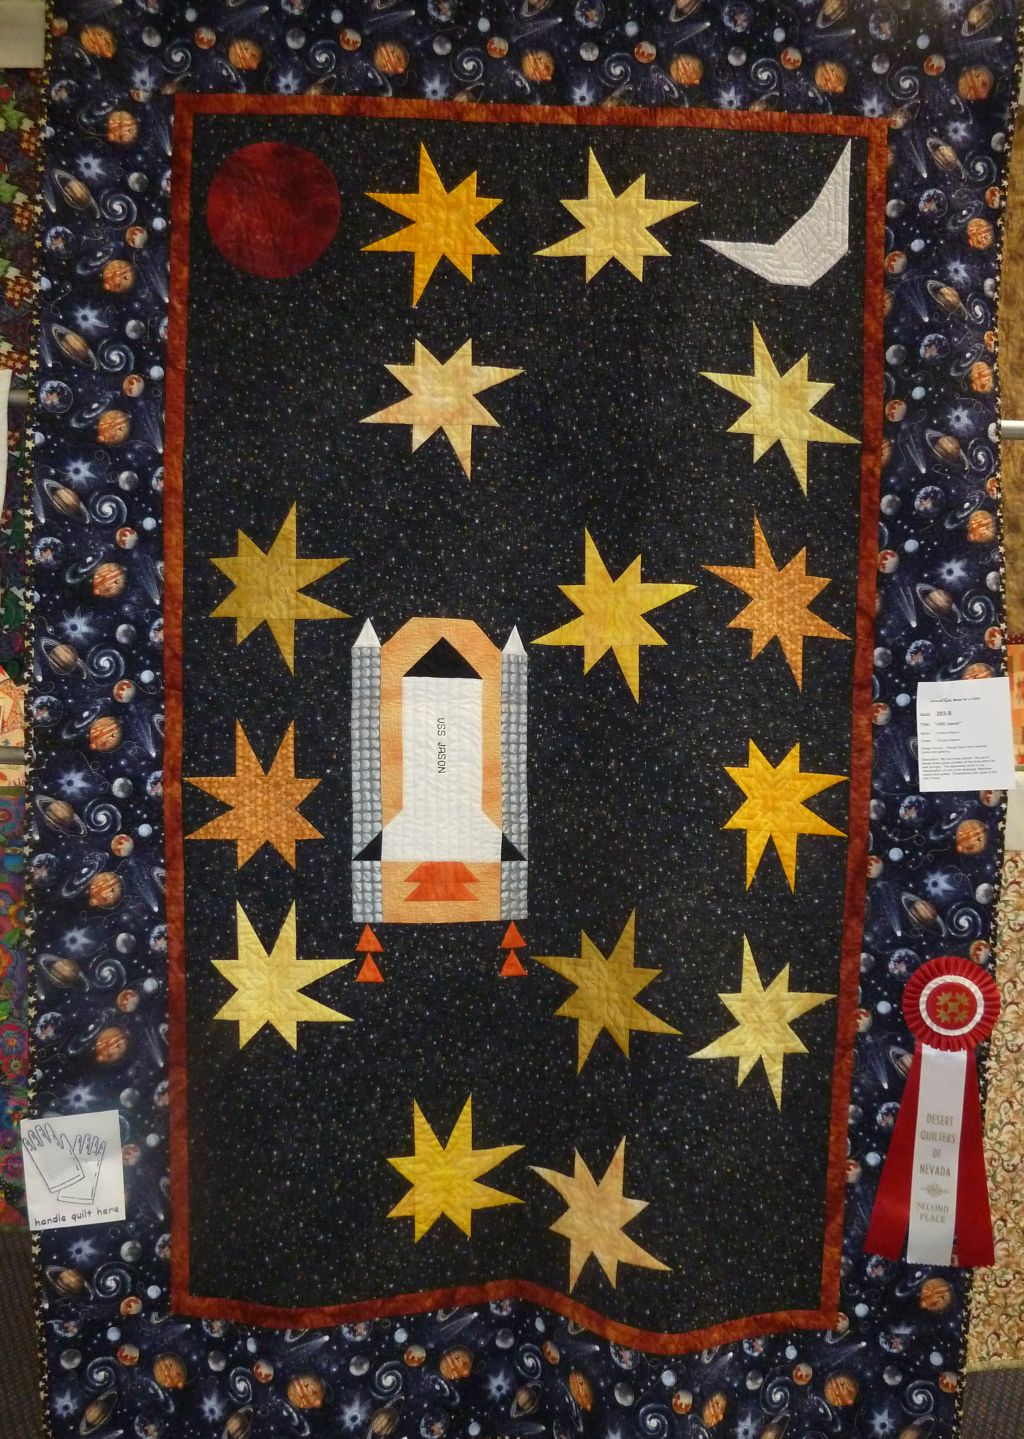 space shuttle quilt pattern - photo #20